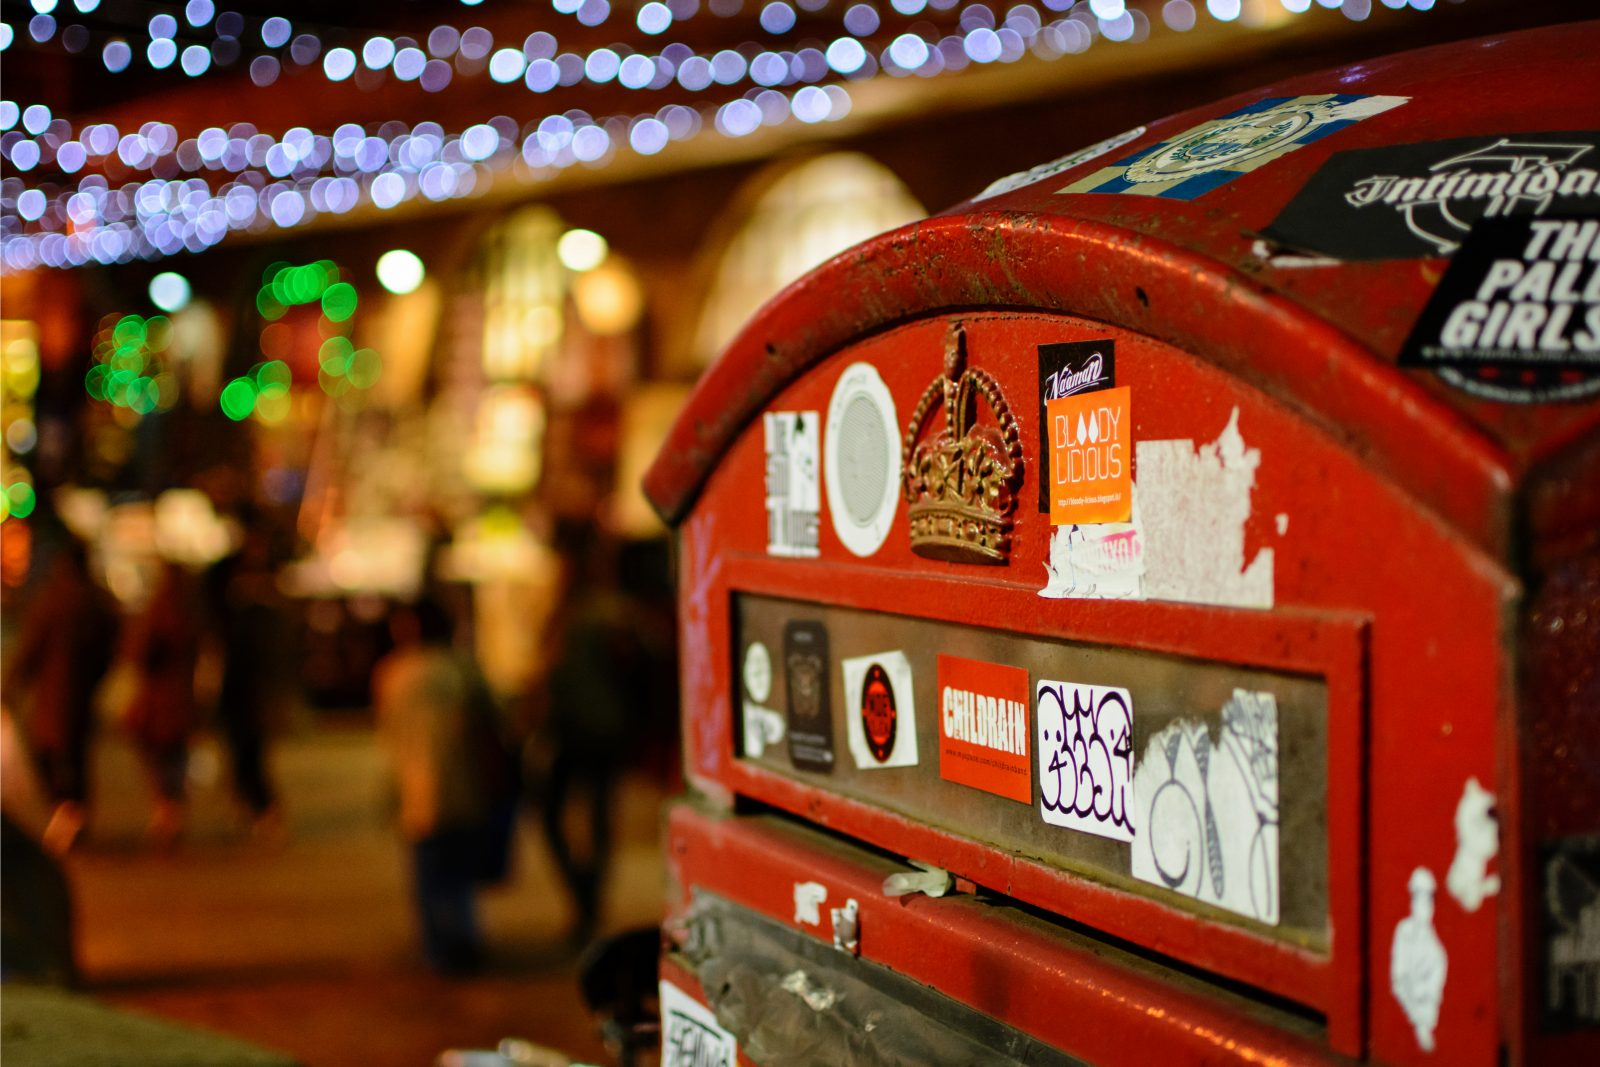 Royal Mail Last Delivery Dates for Christmas 2018